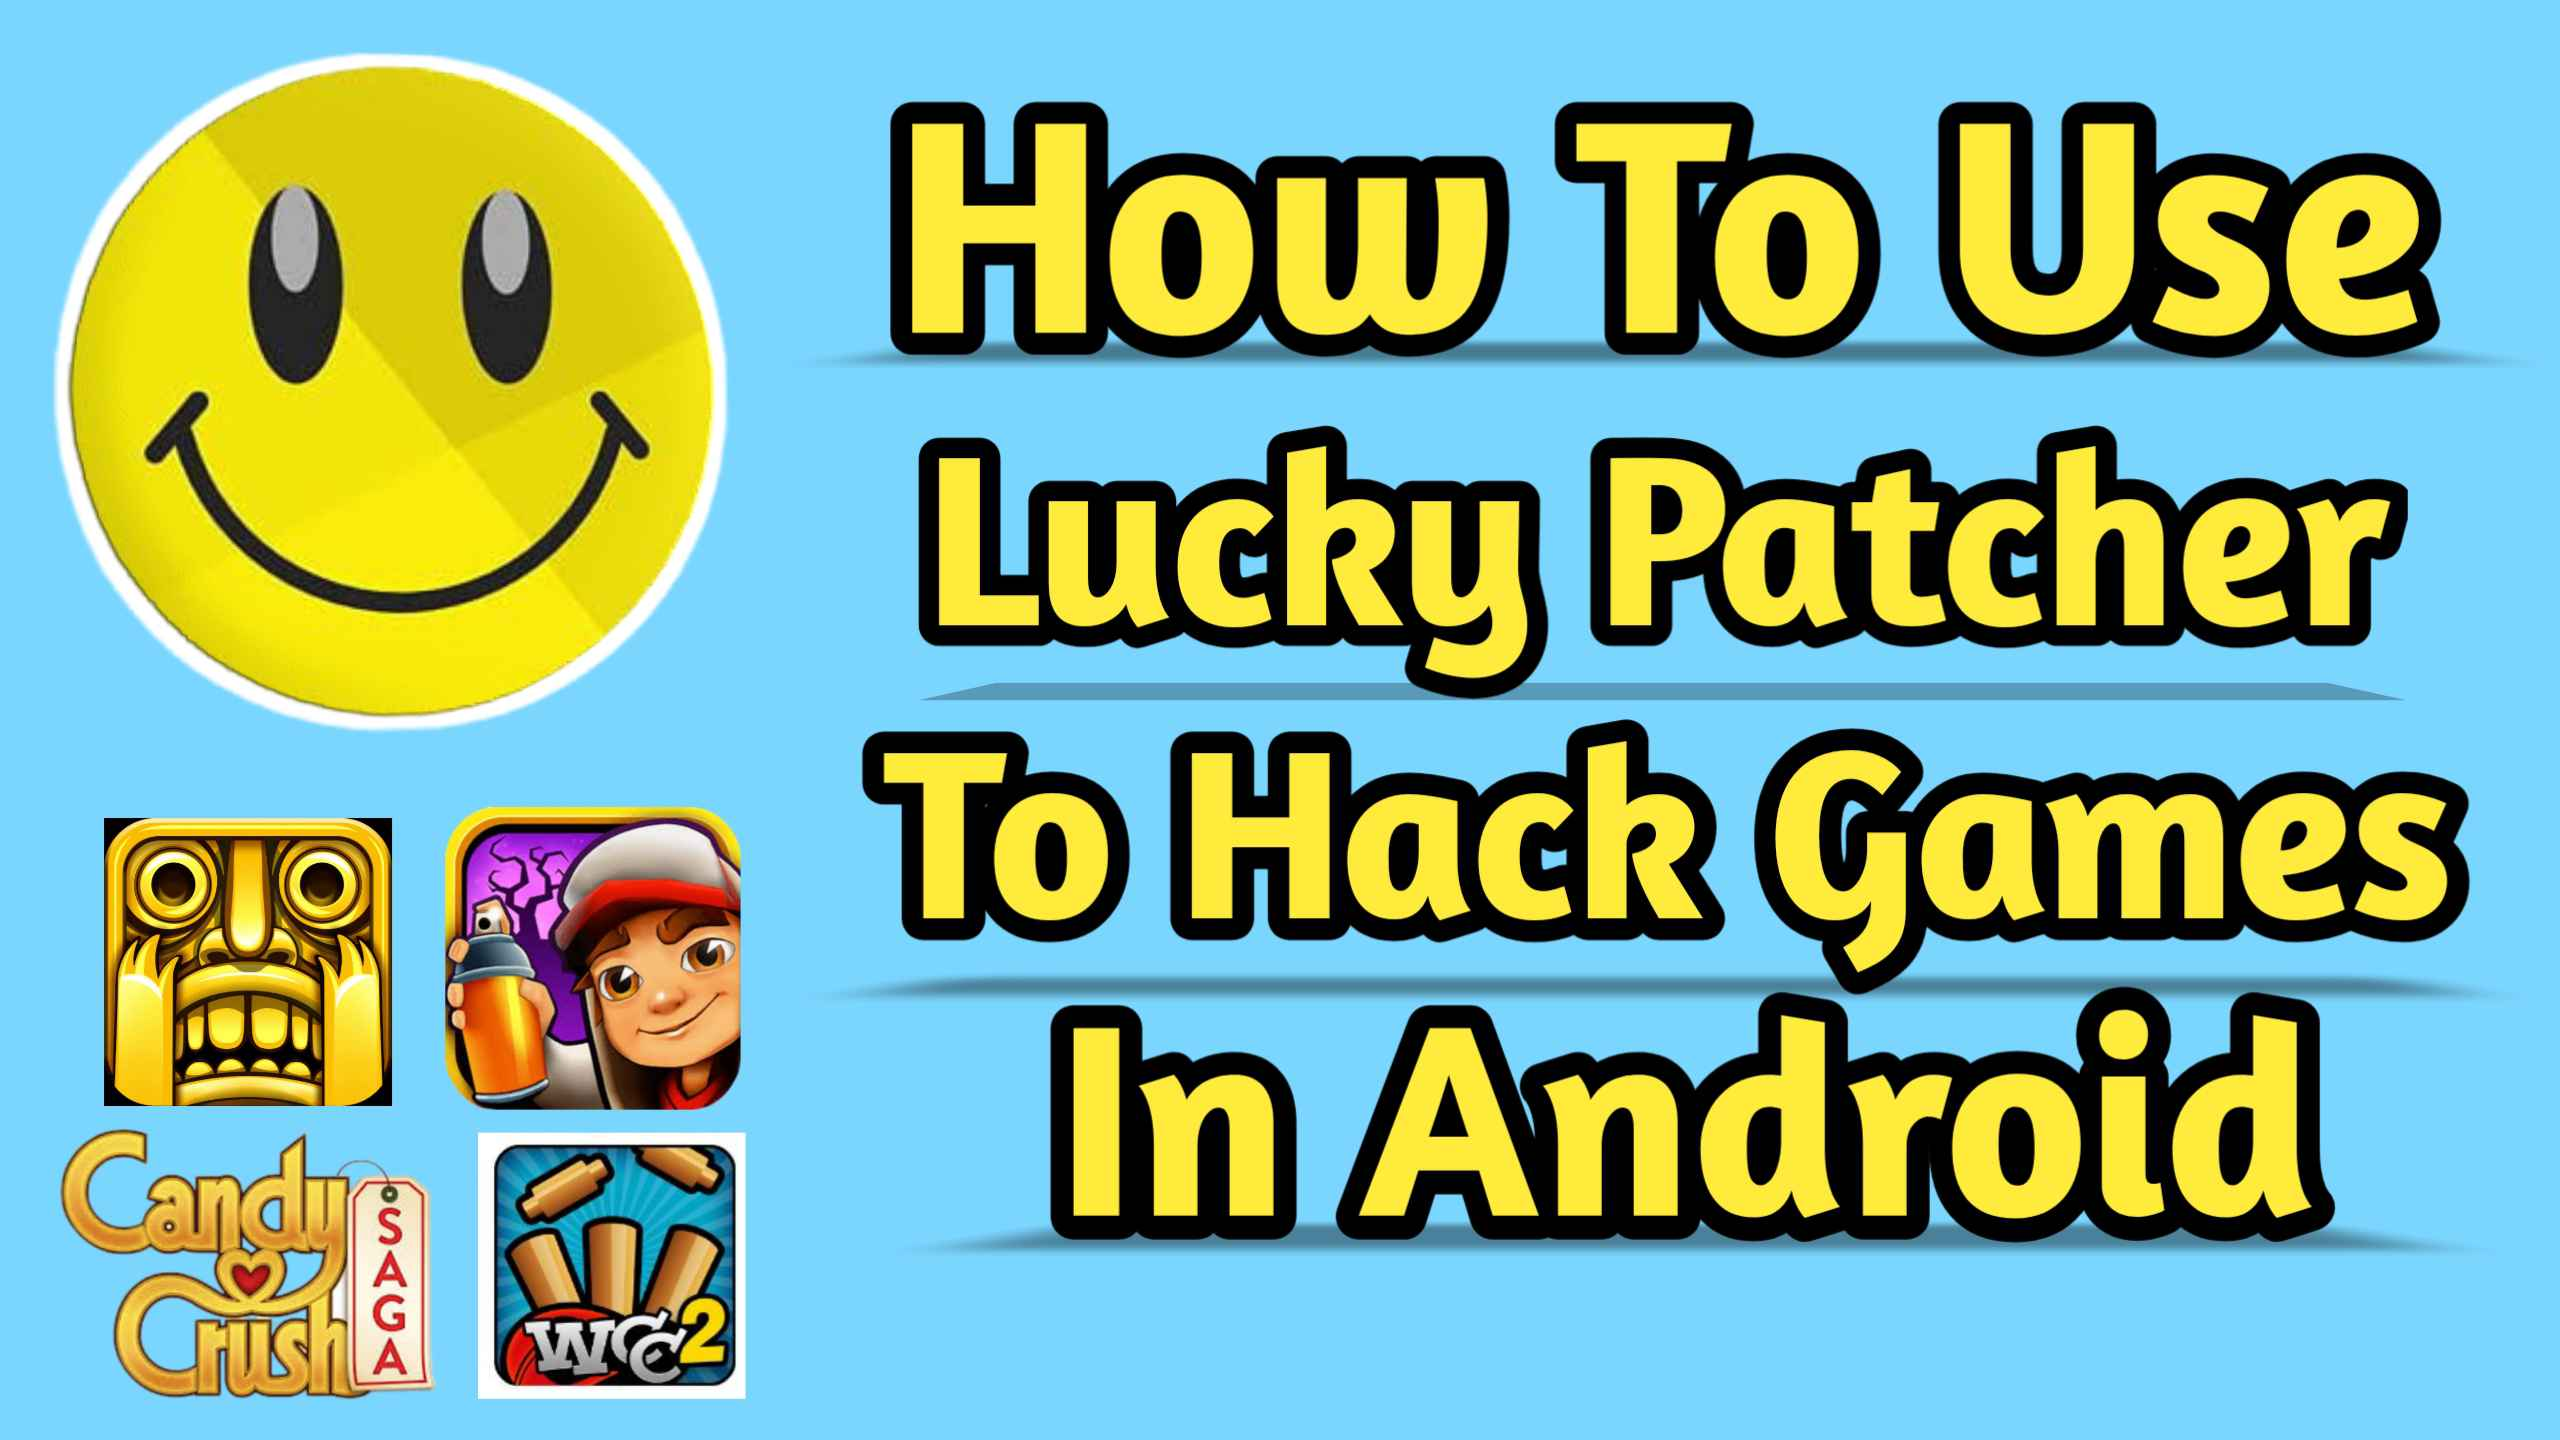 How To Use Lucky Patcher To Hack Games In Android » Tricky Worlds